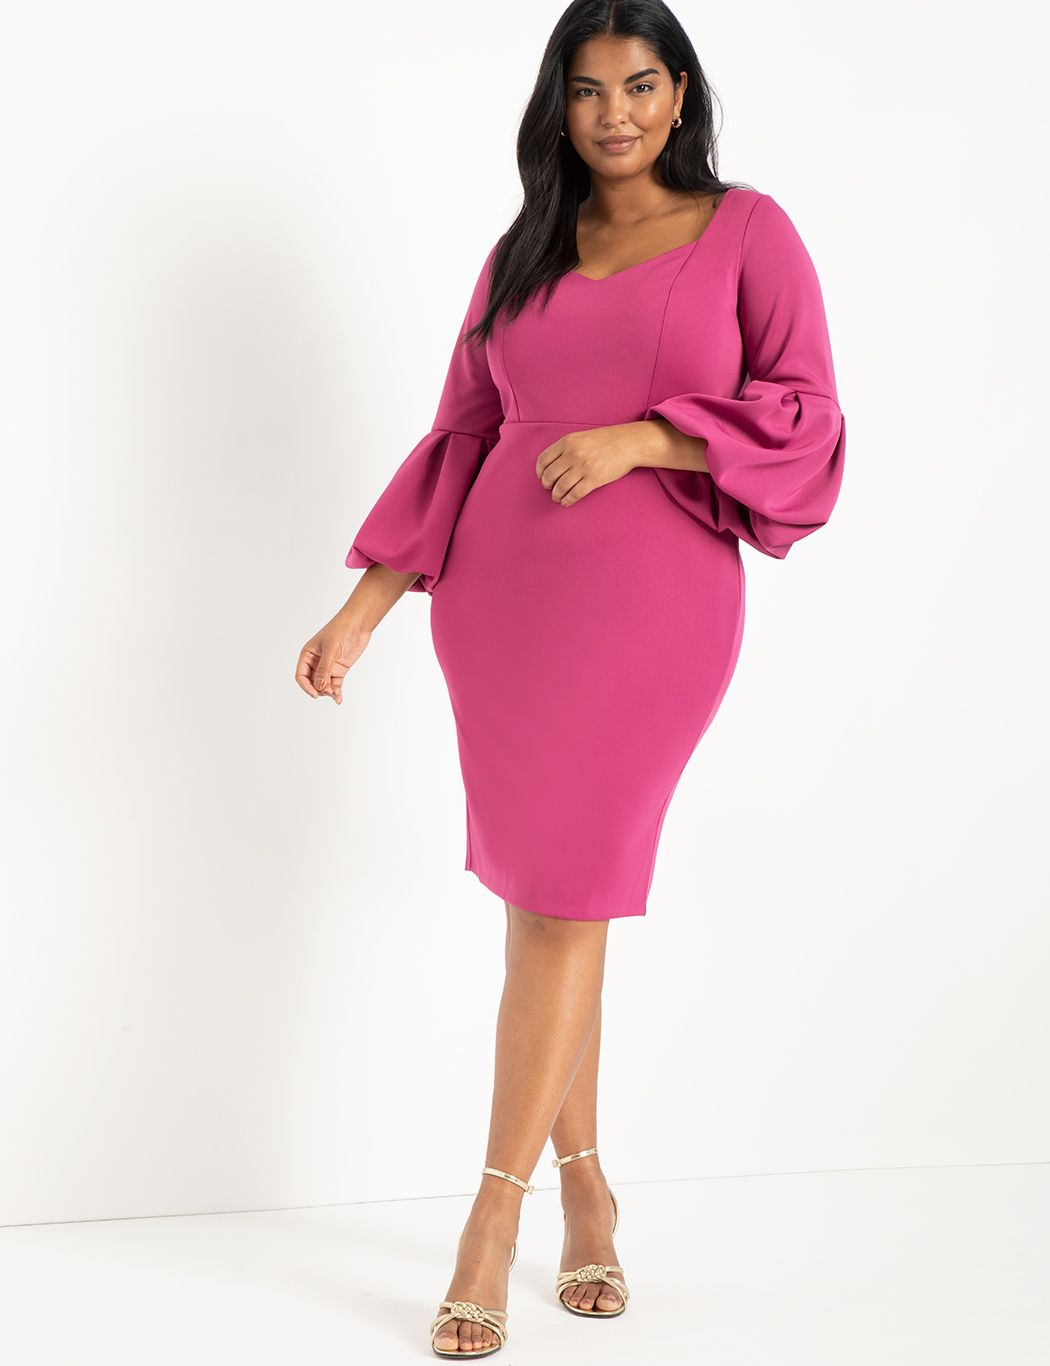 Sweetheart Balloon Sleeve Dress